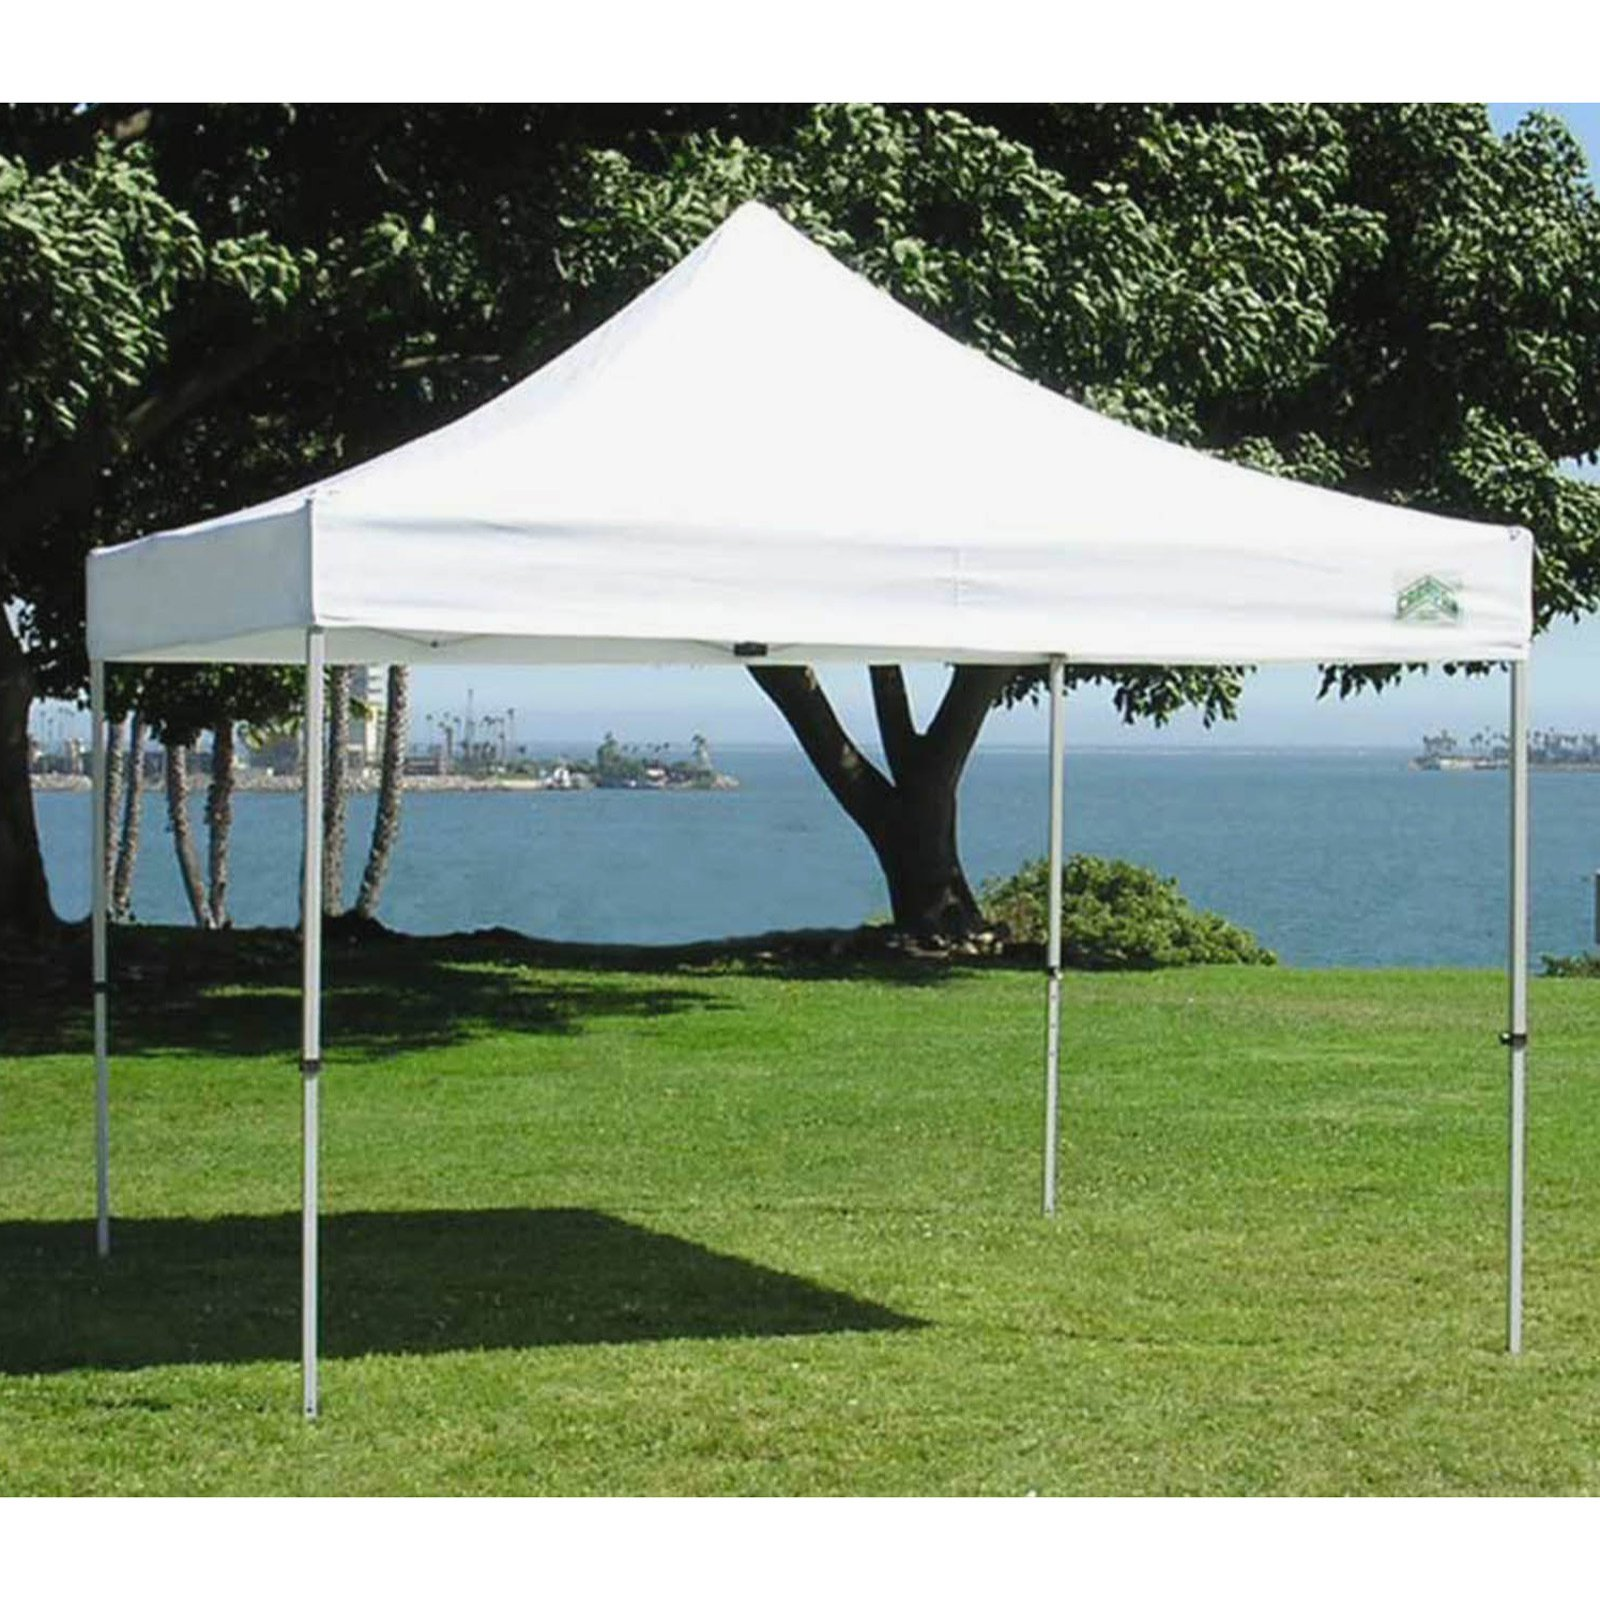 Caravan Sports 10 x 10 ft. Traveler 300 Denier Commercial Canopy & Caravan Sports 10 x 10 ft. Traveler 300 Denier Commercial Canopy ...